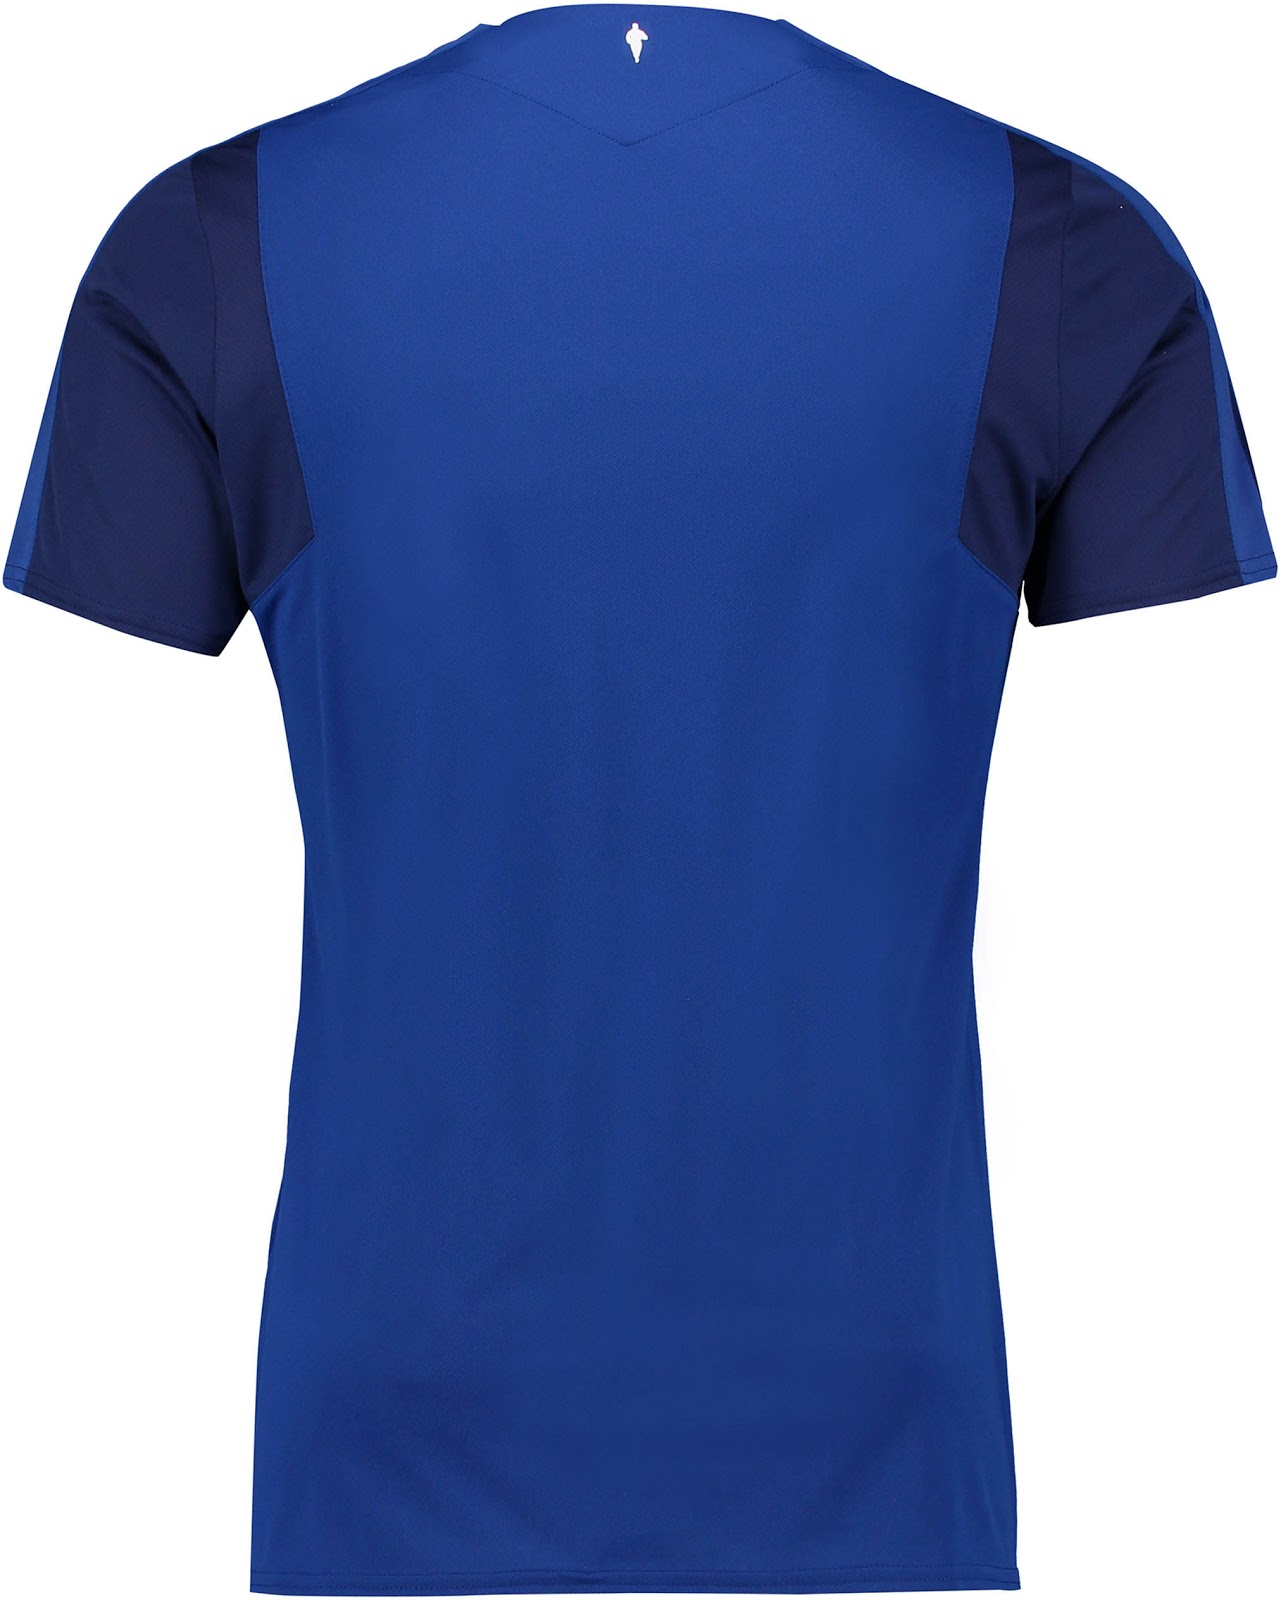 everton-17-18-home-kit-back